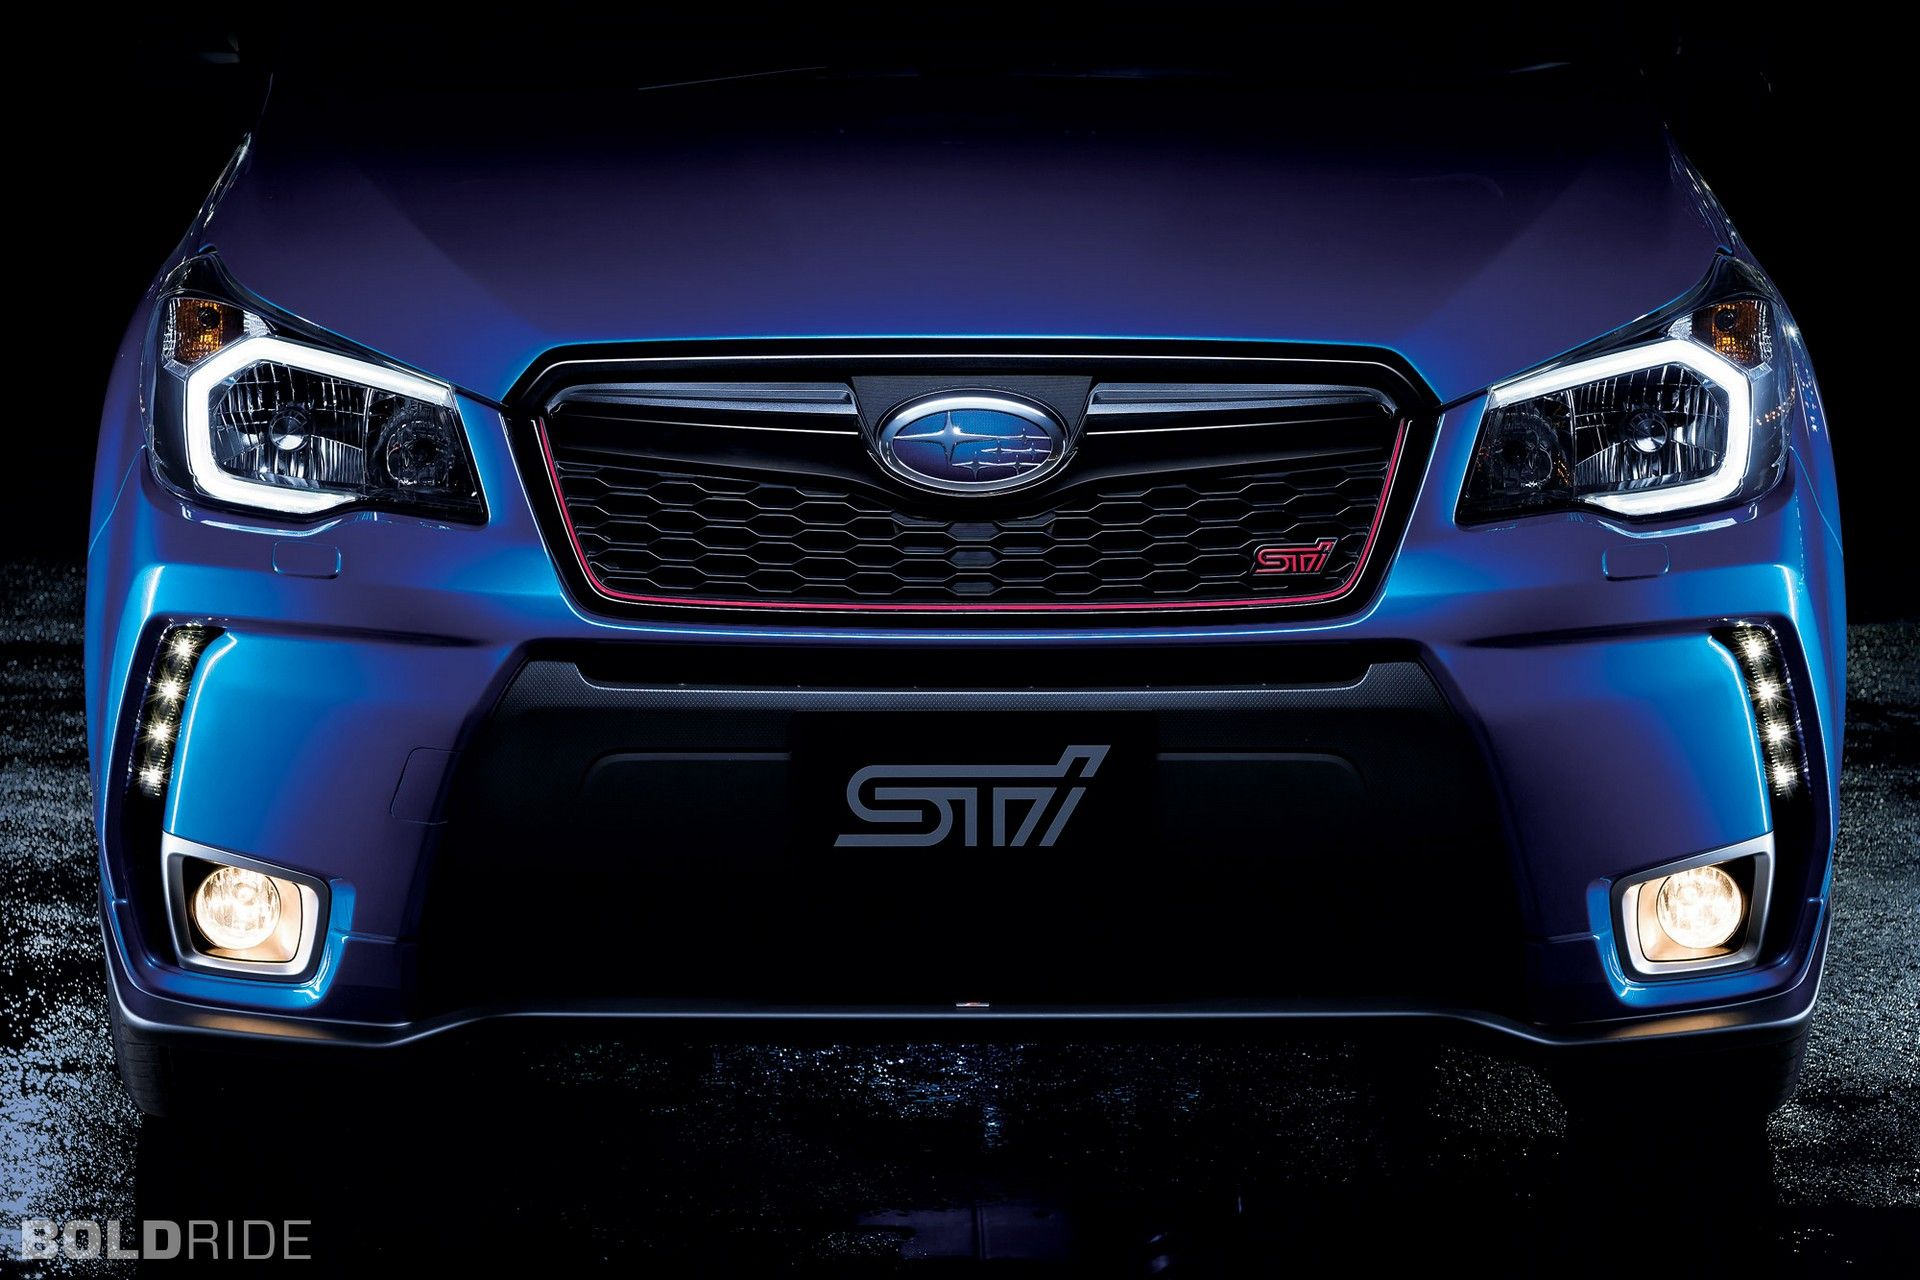 2020 Subaru Forester Sti Review The 2020 Subaru Forester Is A Reduced Hybrid Which Was Initially Propelled Subaru Forester Sti Subaru Forester Xt Jdm Subaru